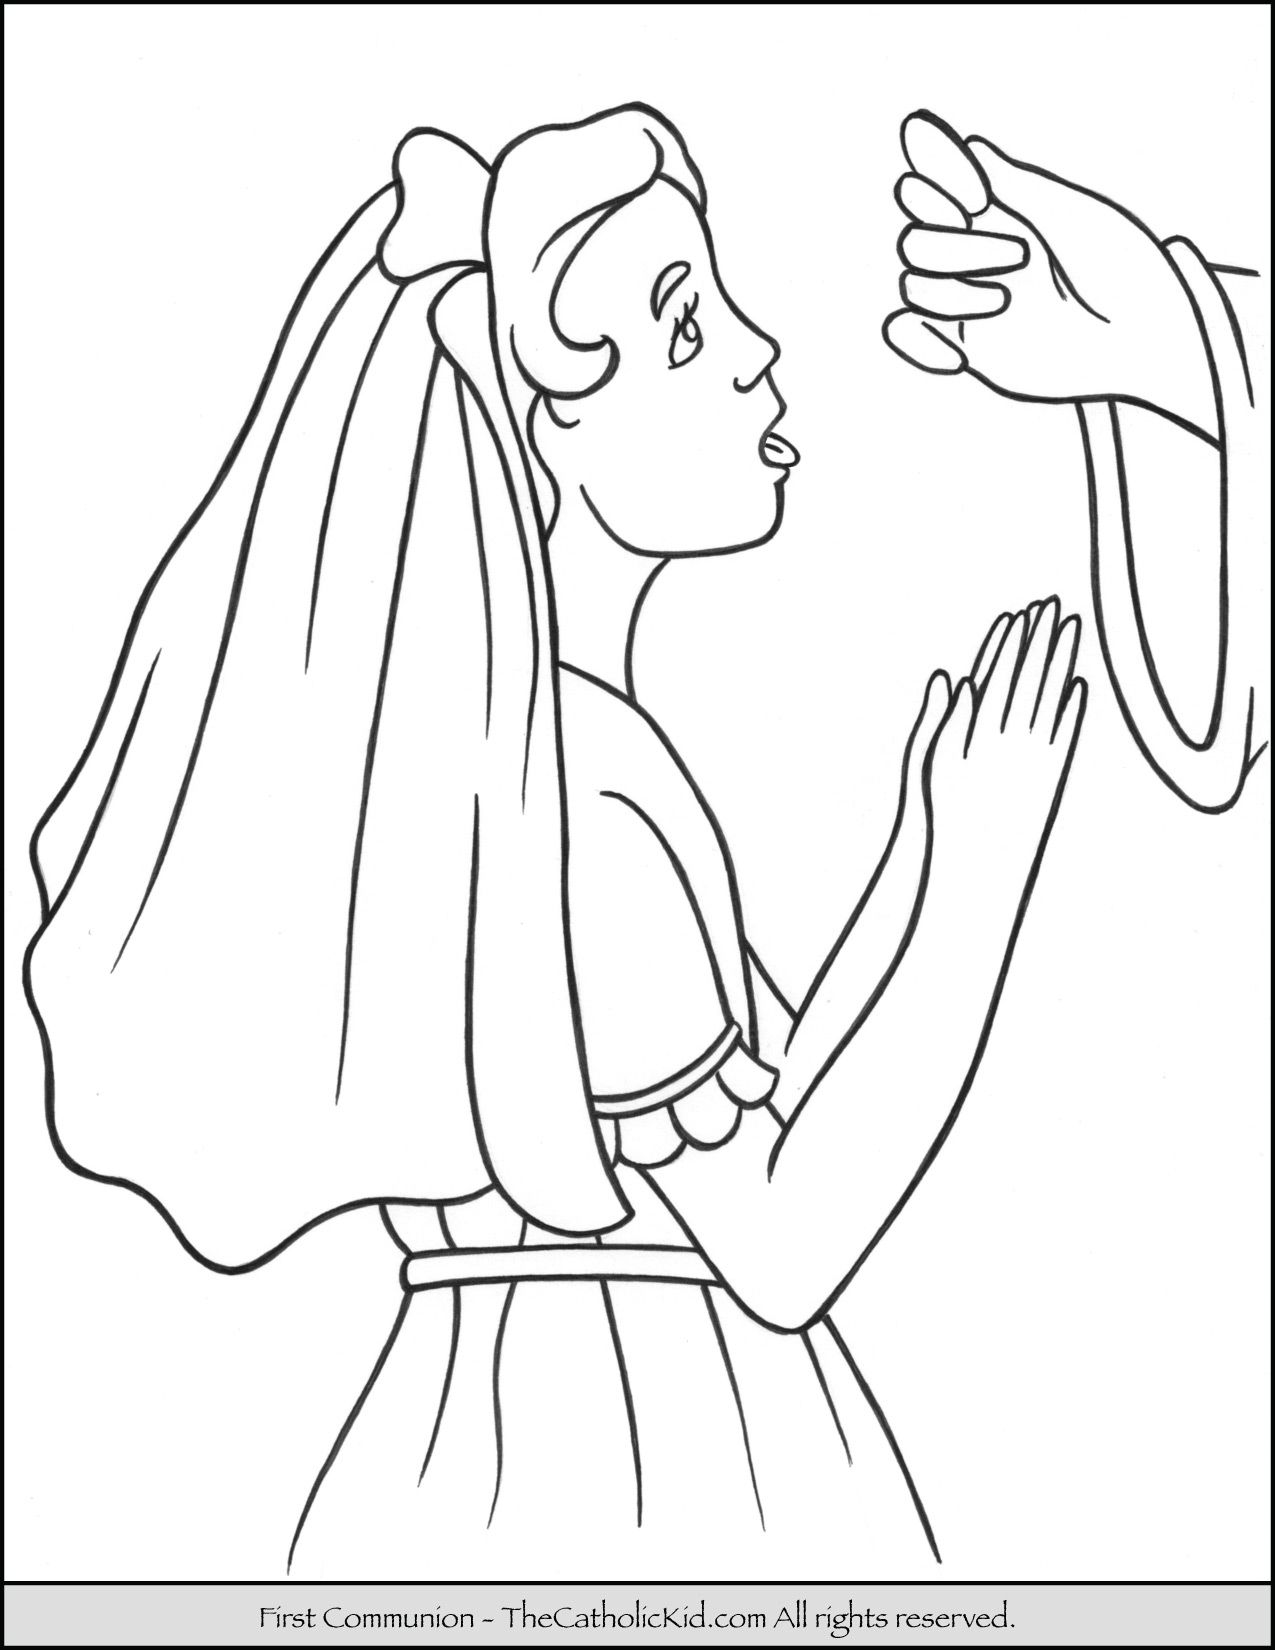 first communion girl coloring page 2 - Girl Coloring Pages 2